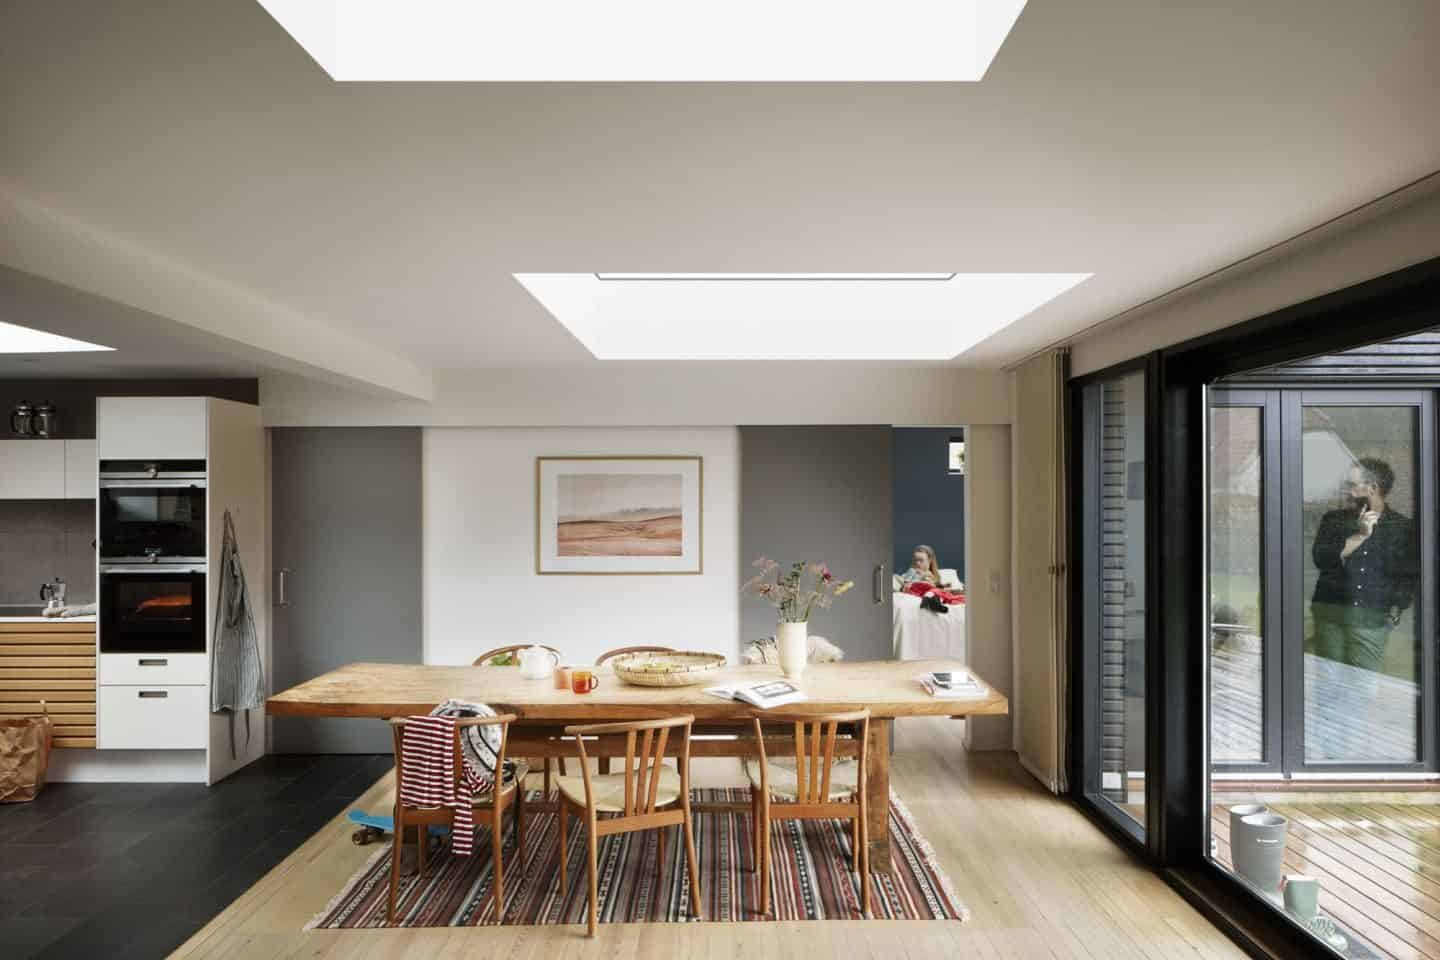 Vario by VELUX Bespoke Flat Roof Windows pictured above a large wooden dining room table